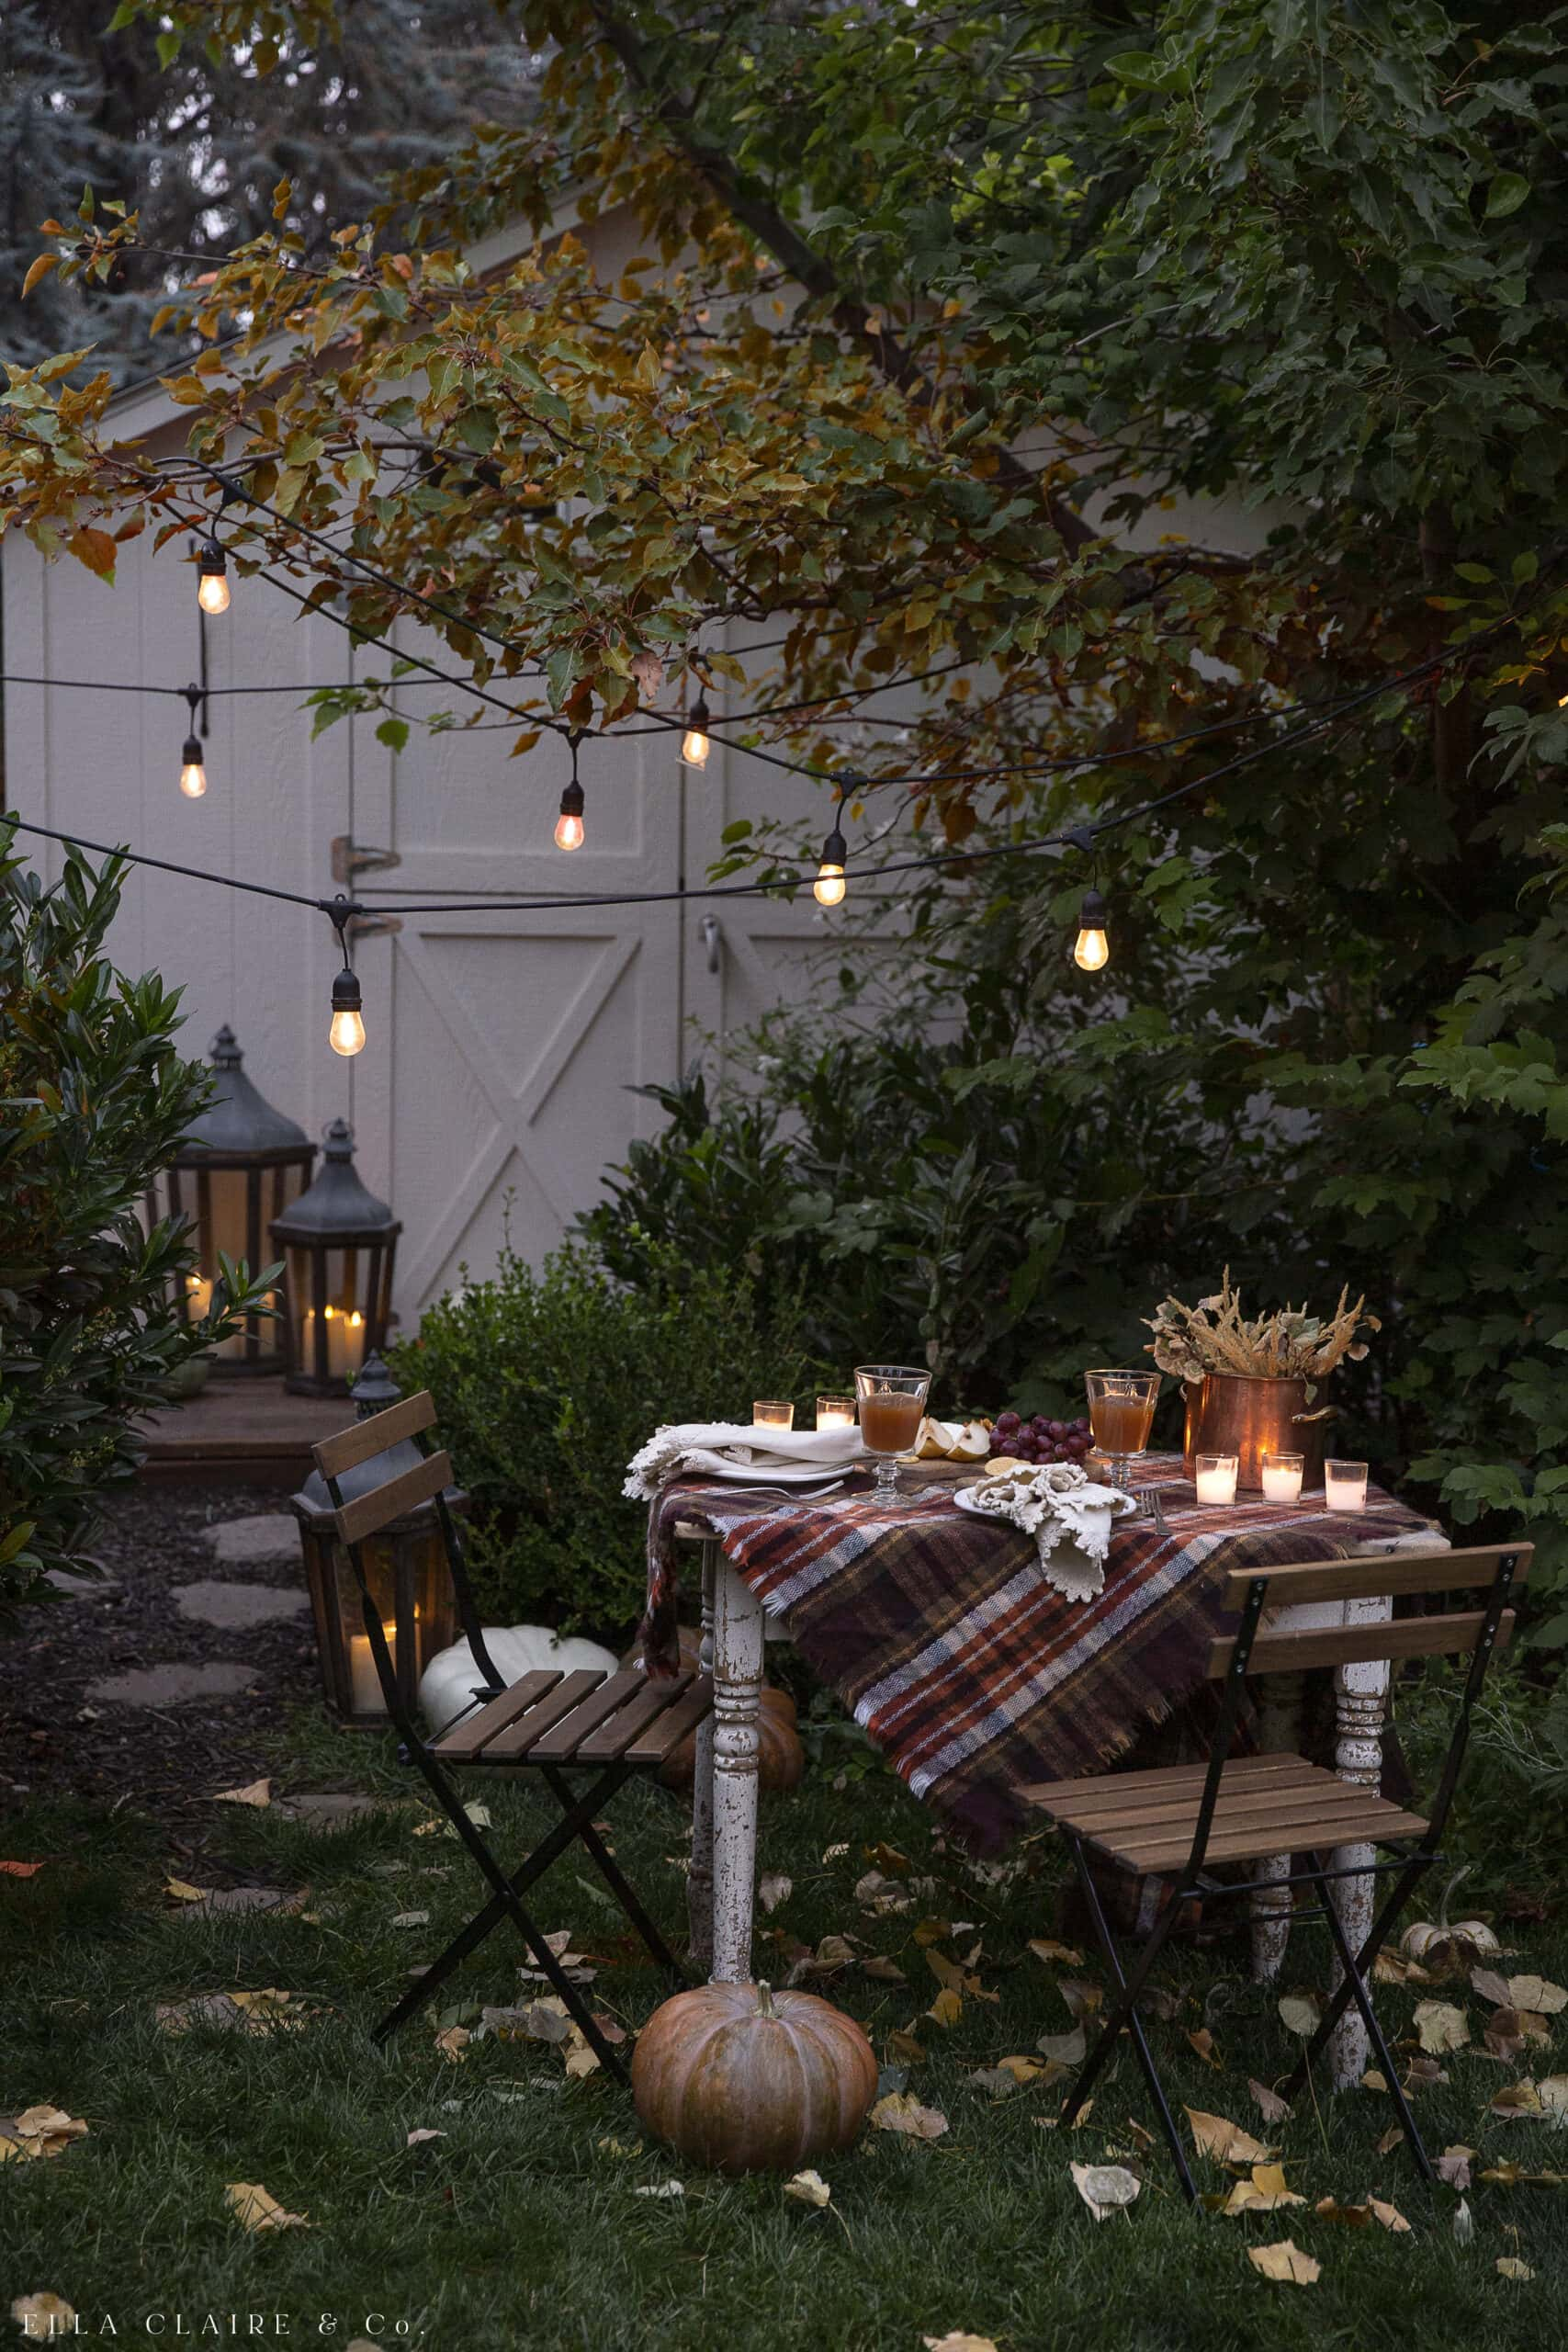 Outdoor fall decorations for entertaining